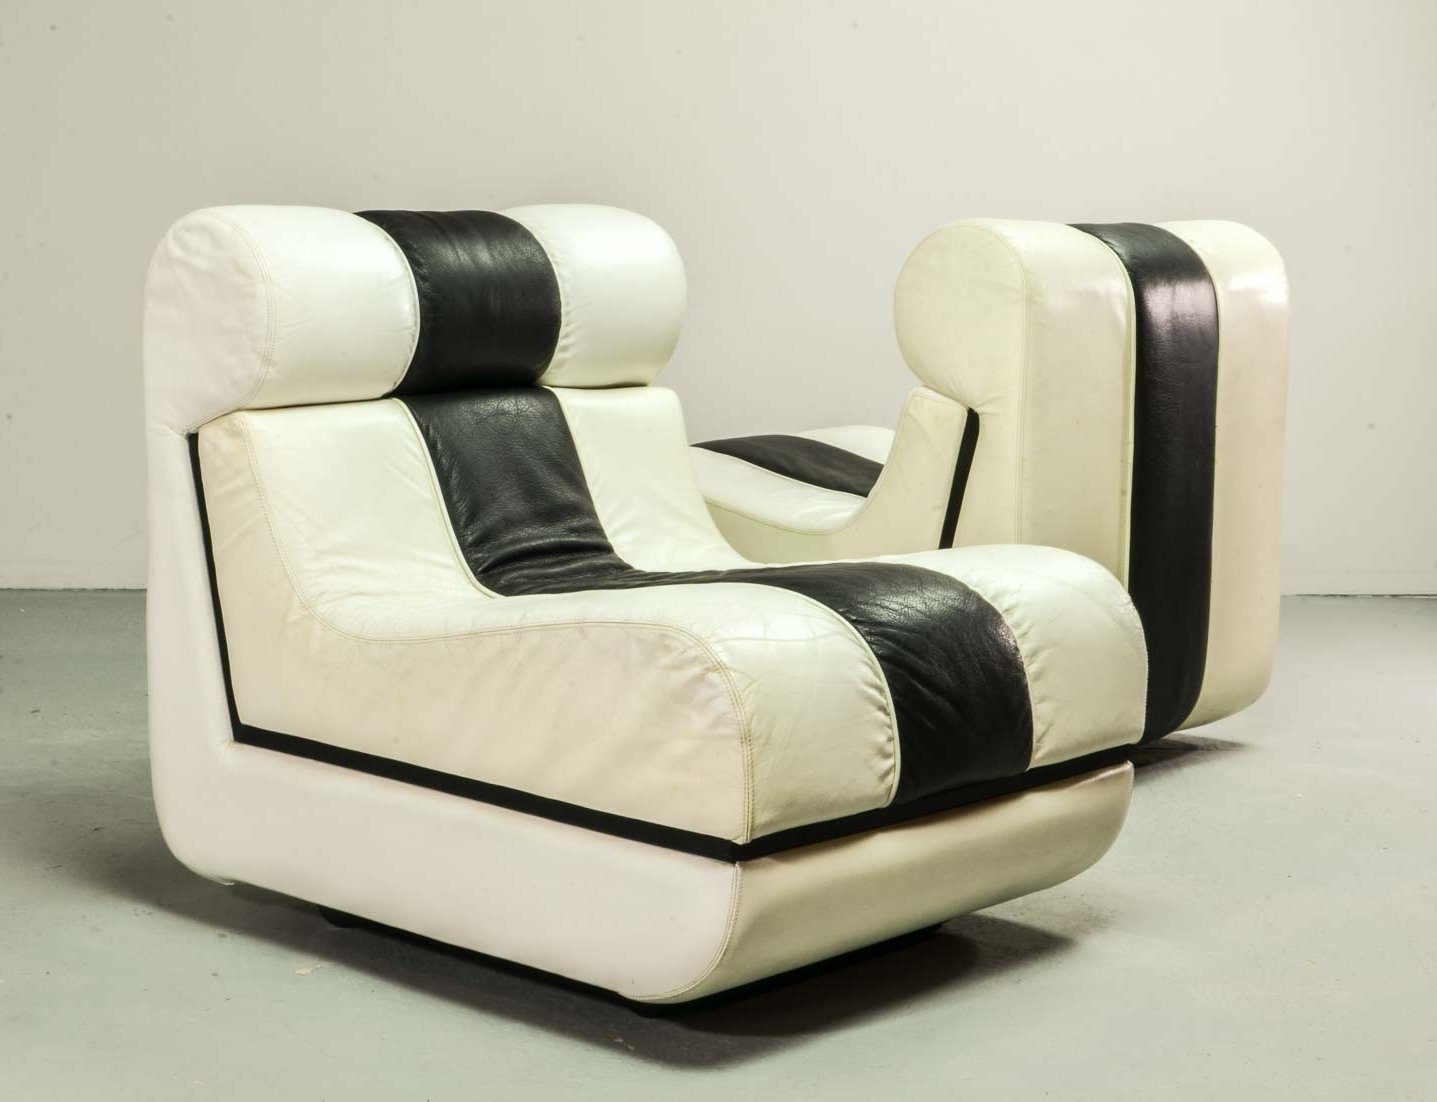 Fantastic Set Of Black White Italian Leather Lounge Chairs 1980S Pabps2019 Chair Design Images Pabps2019Com